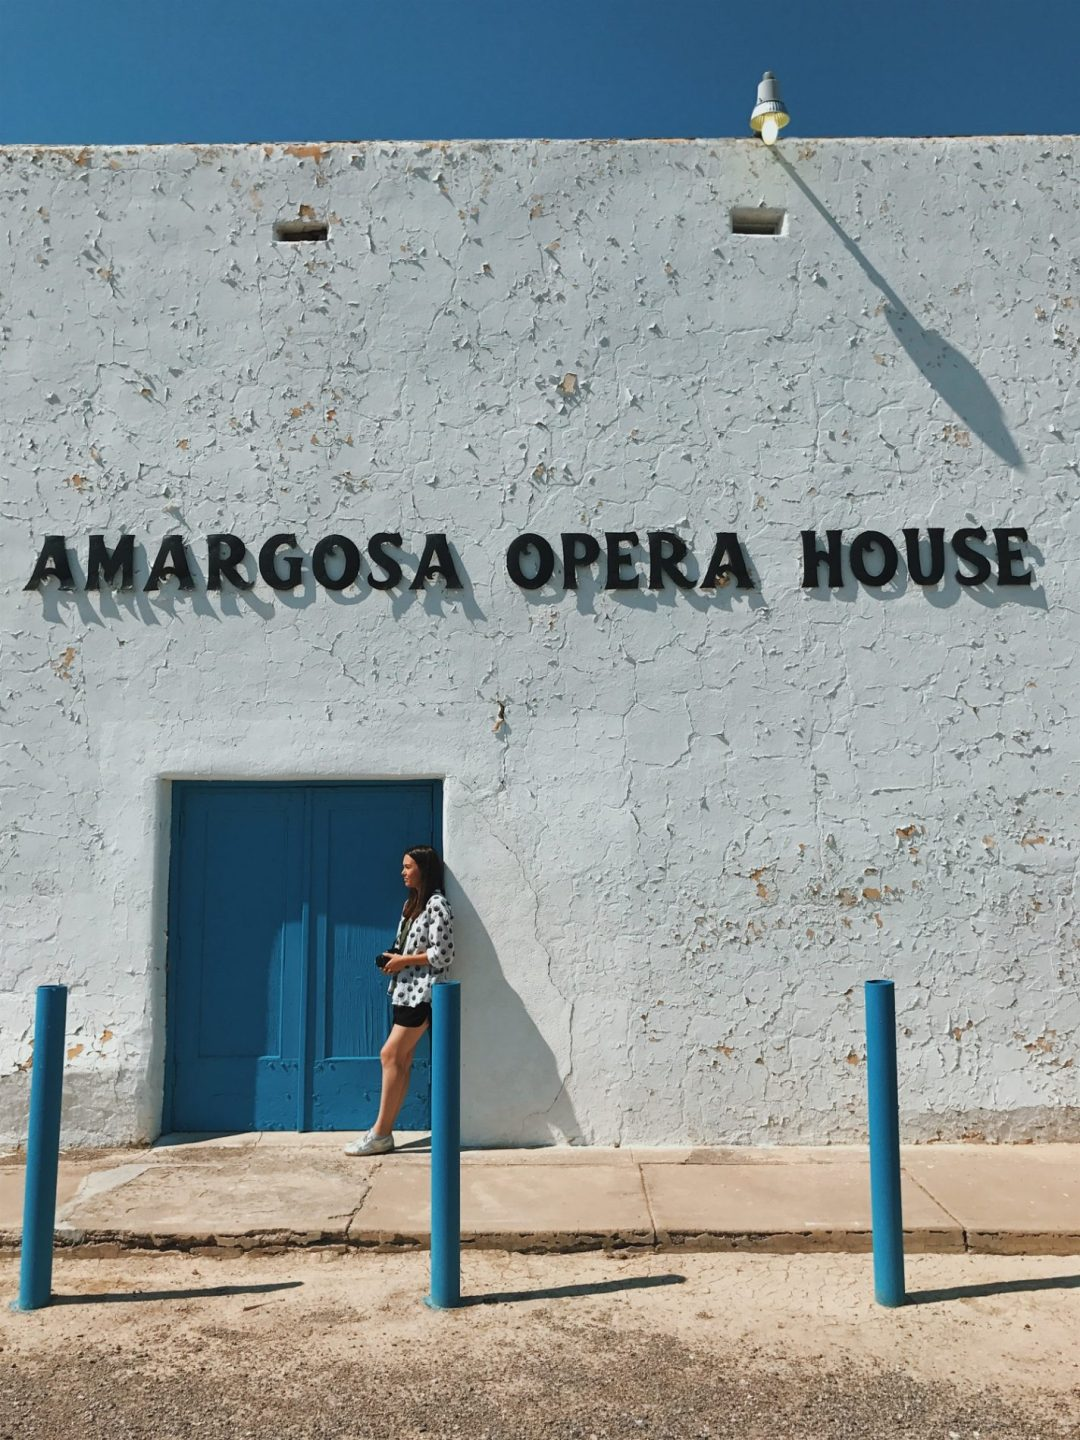 A girl leans against an old opera house with a blue door in the desert.